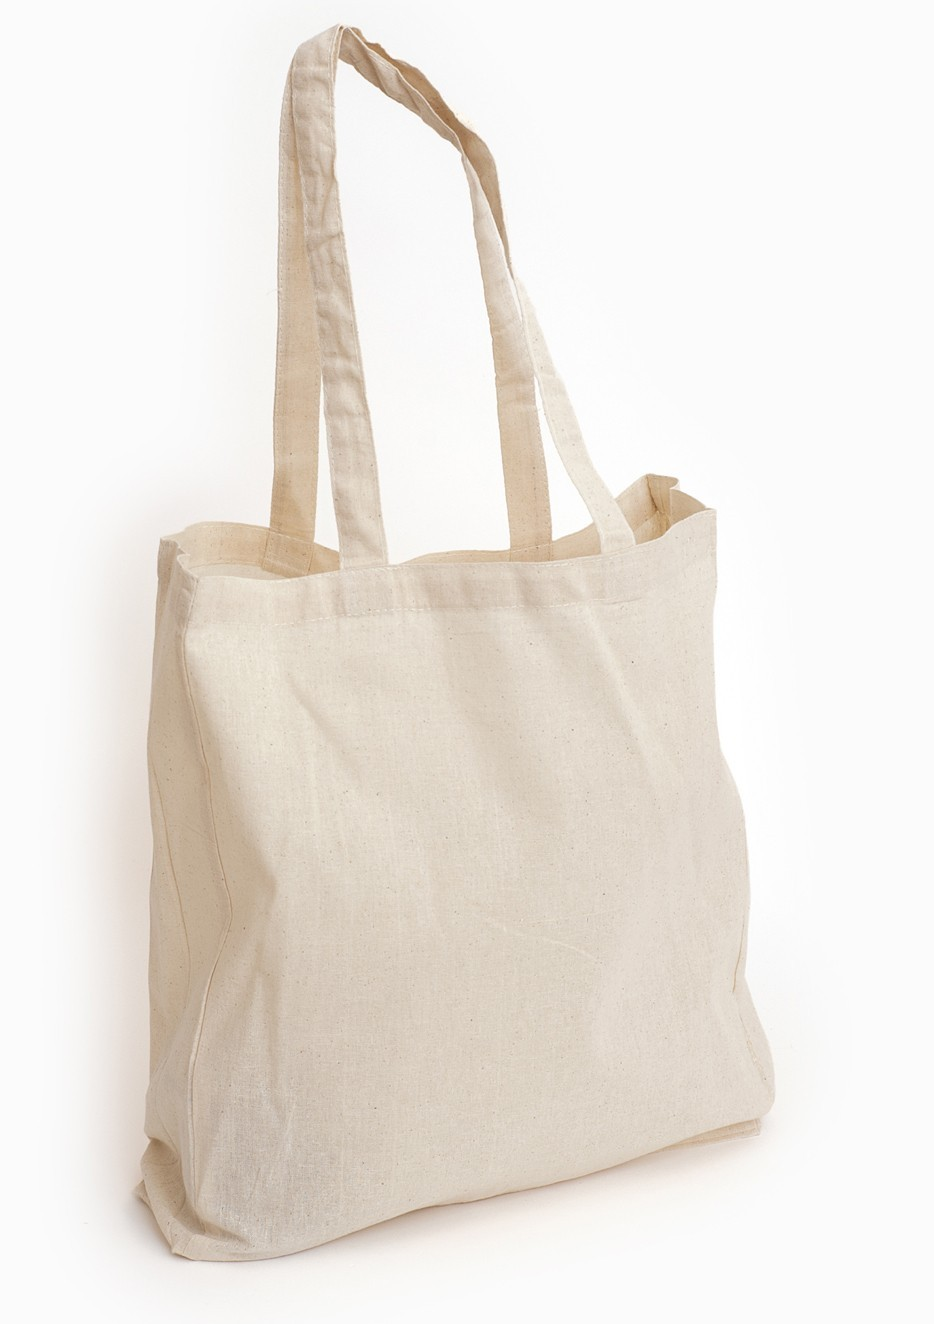 tote bags in bulk | cheap tote bags | wholesale canvas bags